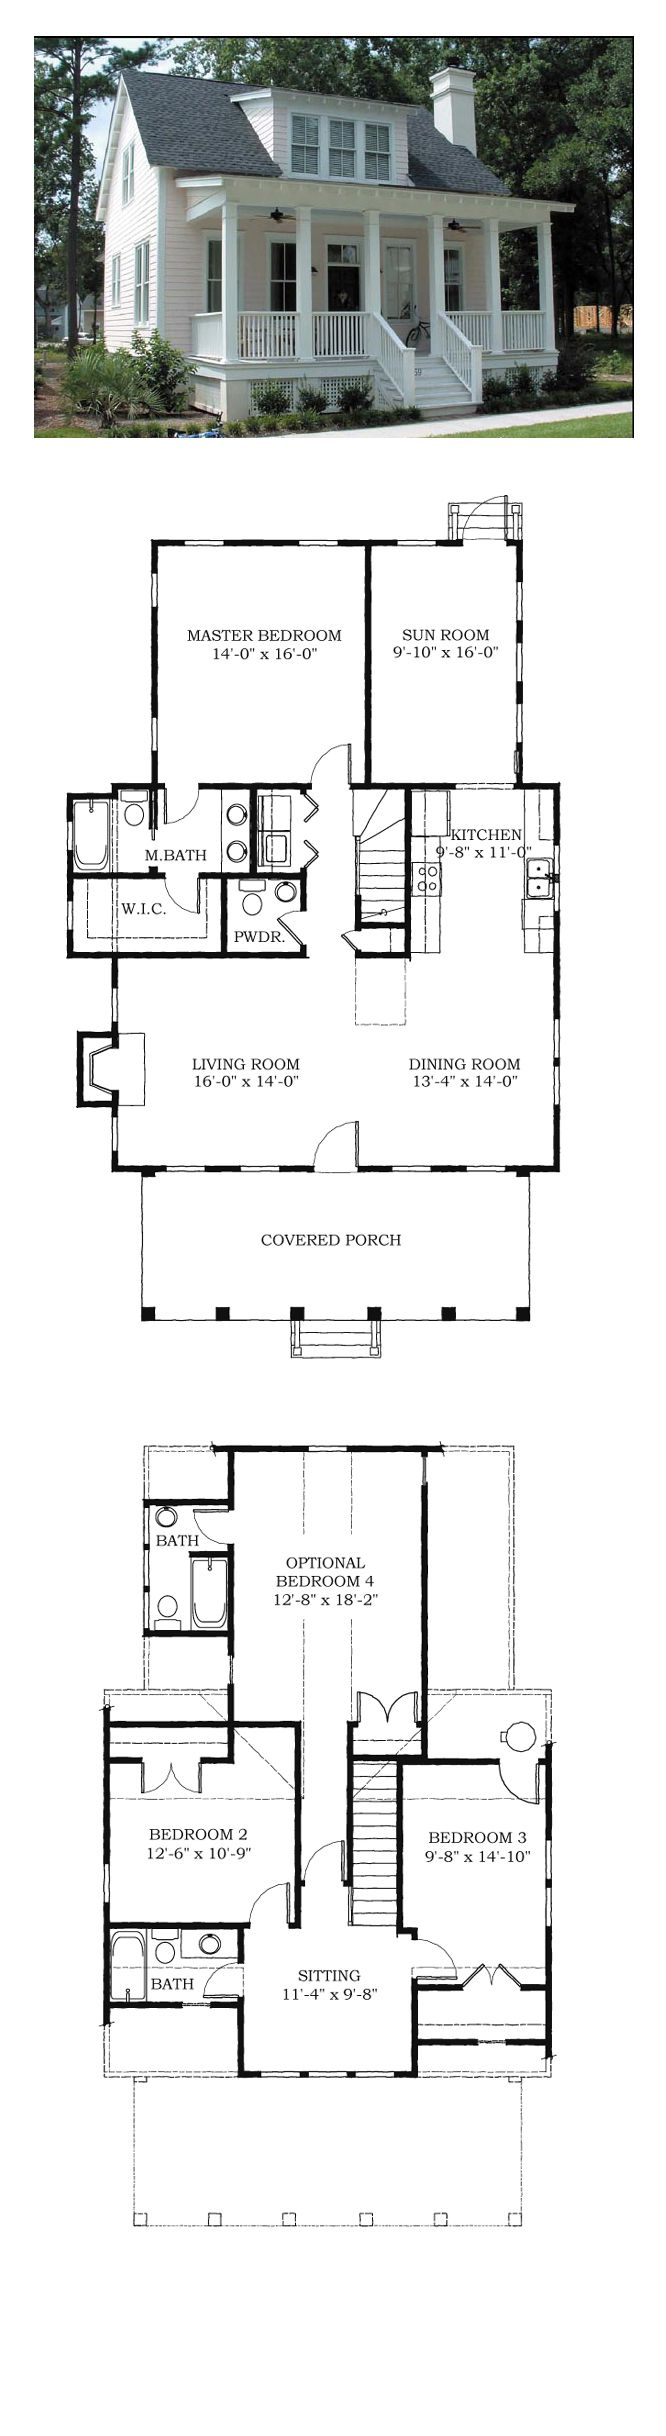 Tremendous 17 Best Ideas About Small House Plans On Pinterest Small House Largest Home Design Picture Inspirations Pitcheantrous